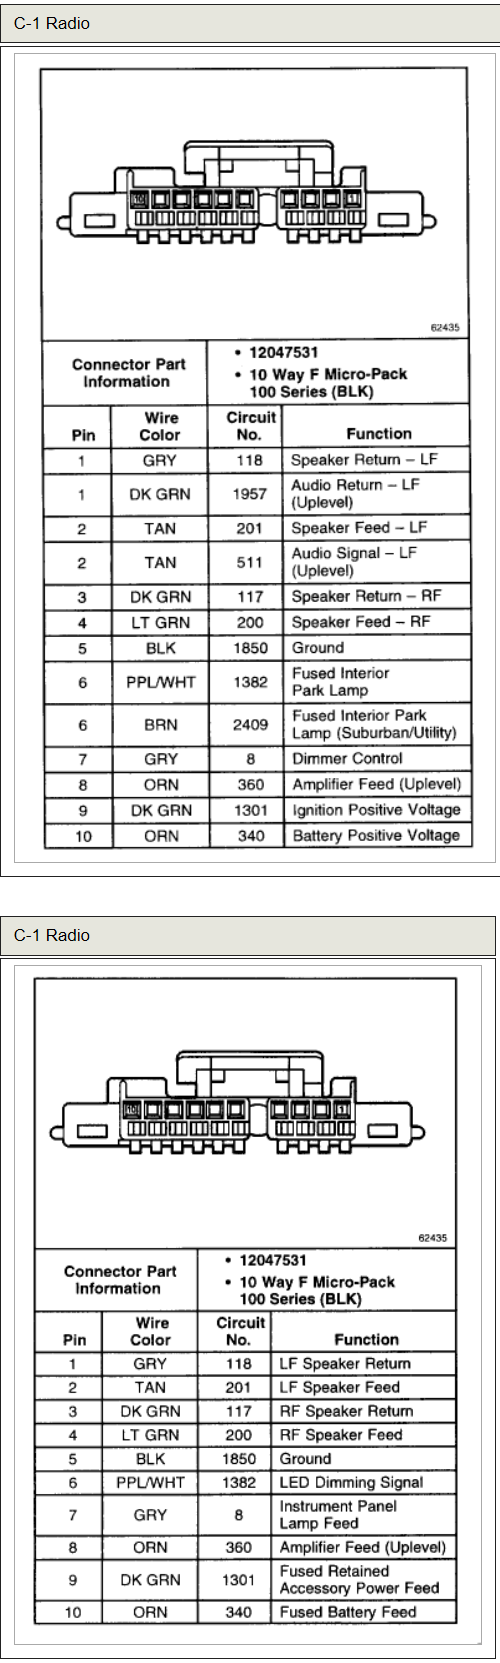 chevrolet car radio stereo audio wiring diagram autoradio connector rh tehnomagazin com 2005 chevrolet tahoe car stereo radio wiring diagram 2005 chevy tahoe radio wiring harness diagram